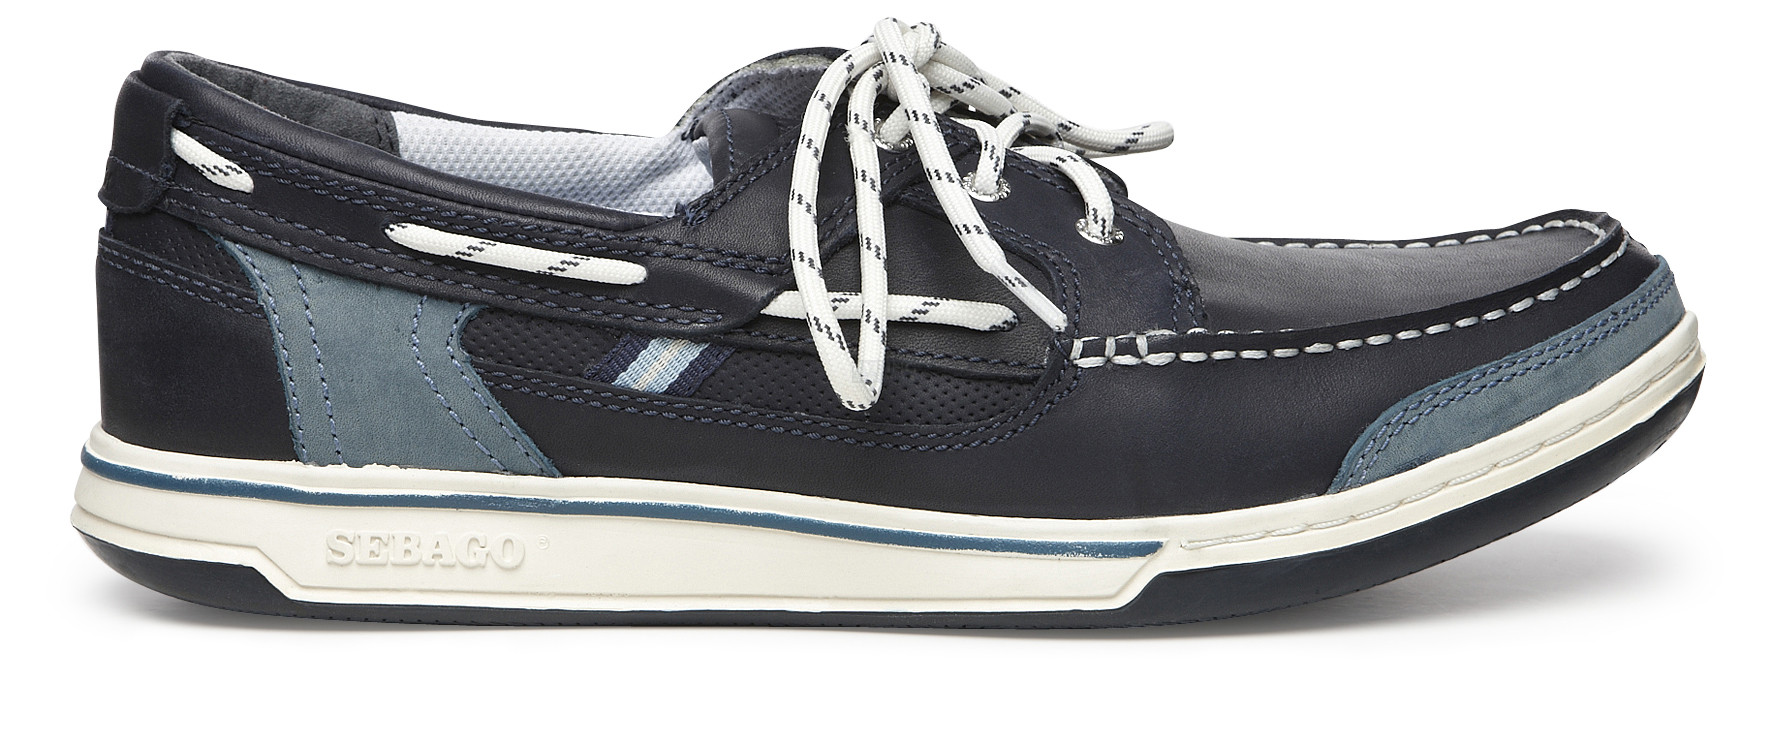 Sebago Triton Three-Eye Blue/Black